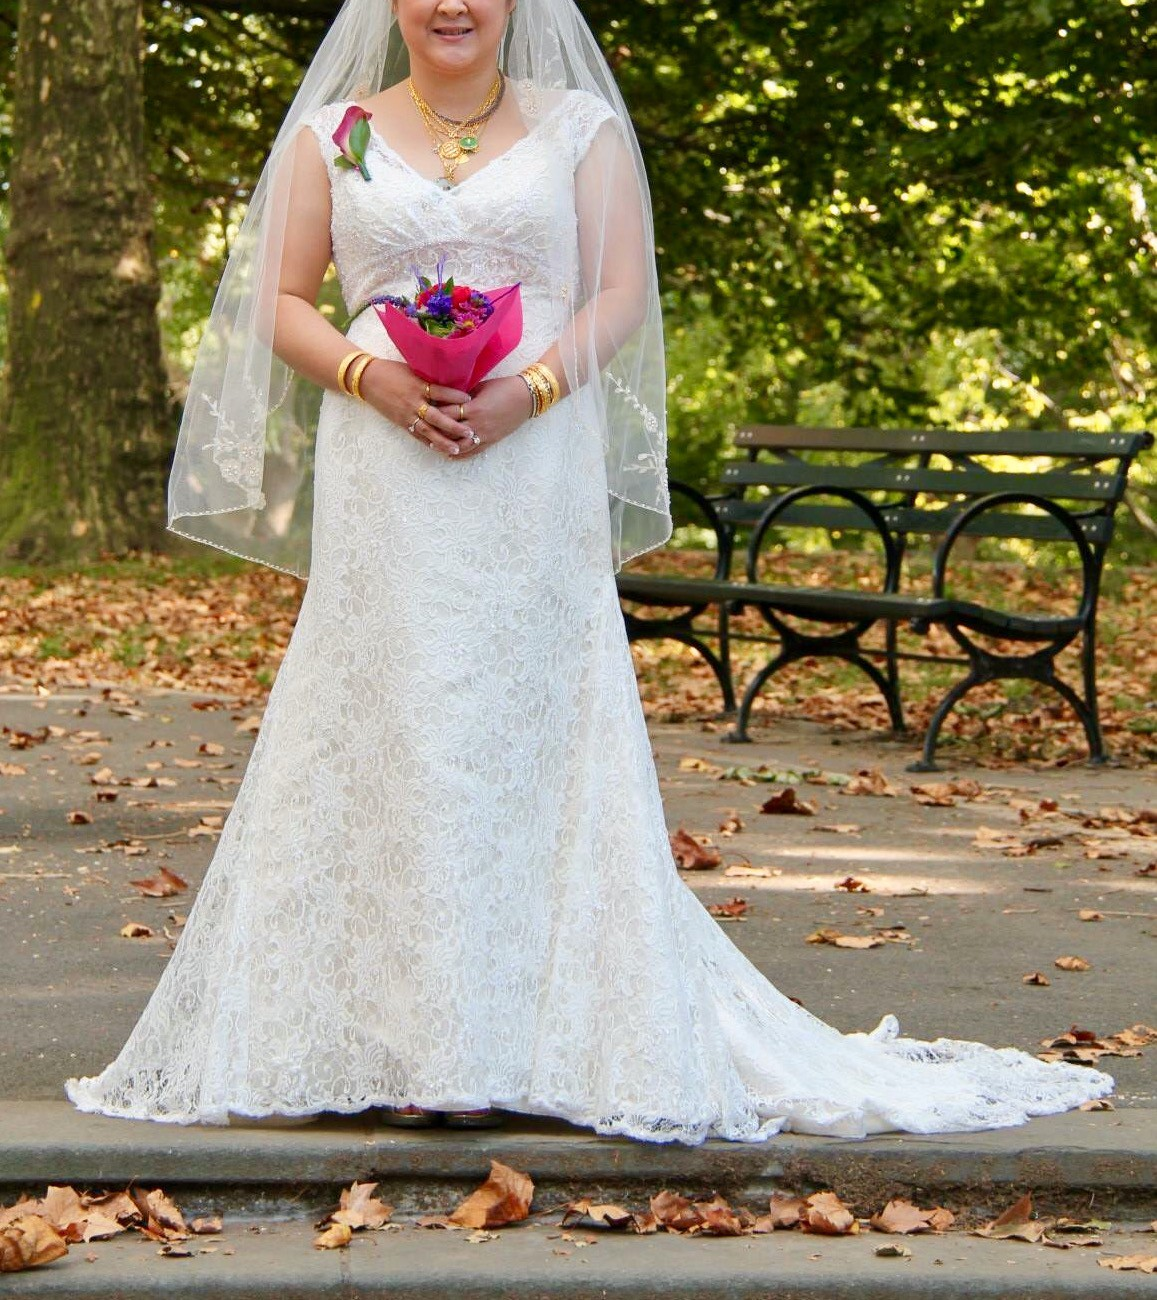 David S Bridal Wedding Gown Preservation: David's Bridal T9612 Used Wedding Dress On Sale 50% Off